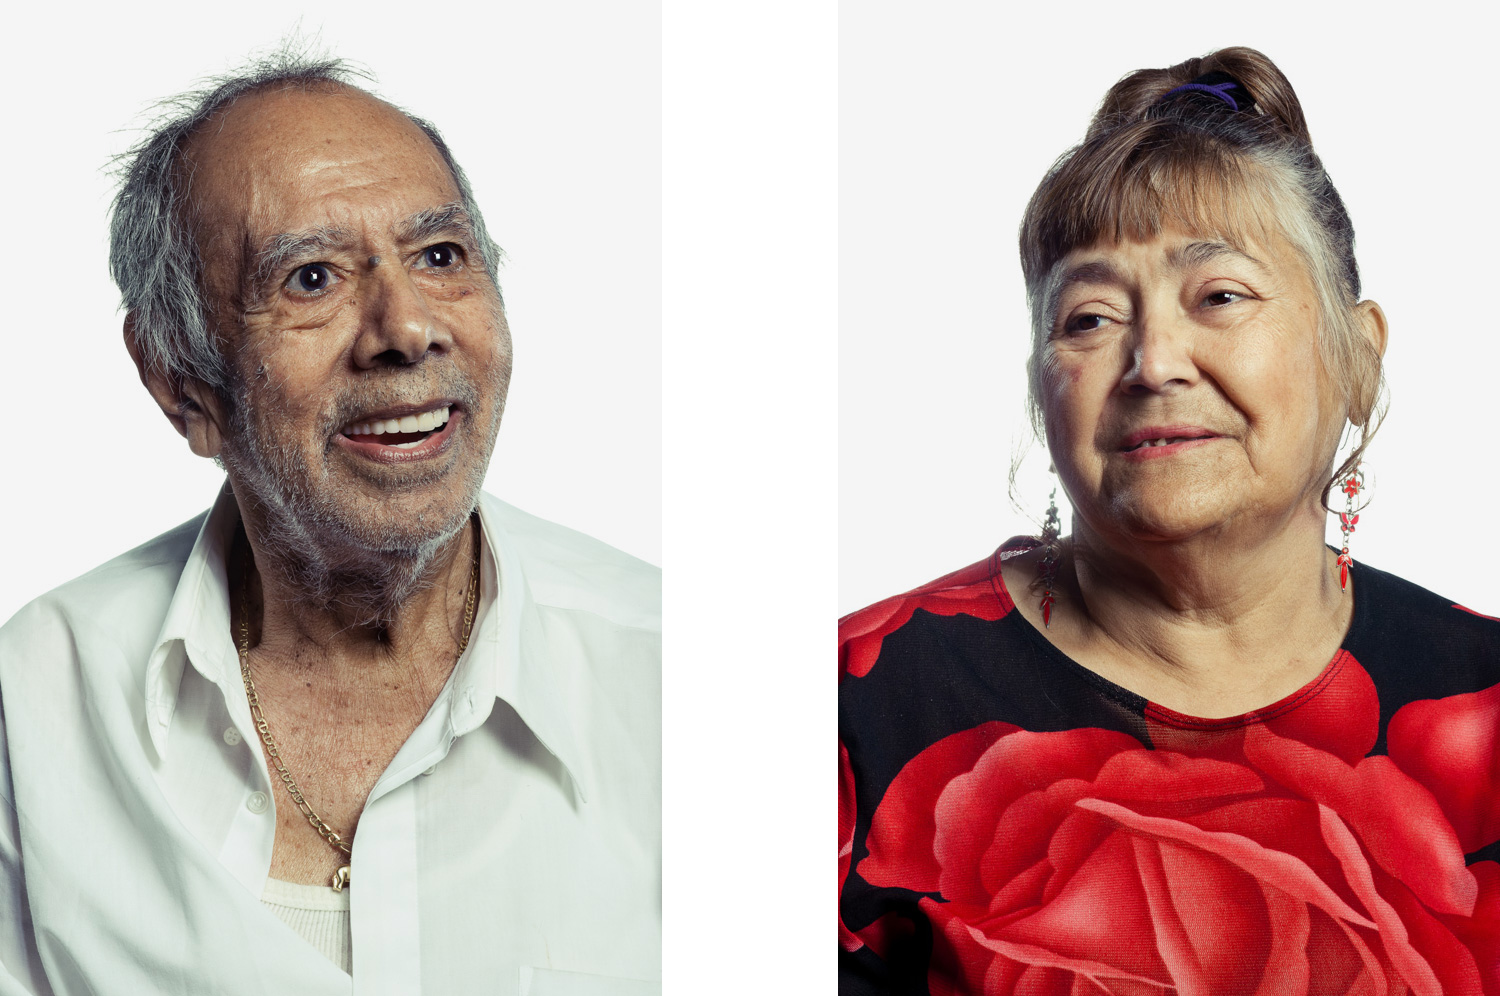 Portrait of elderly man and woman